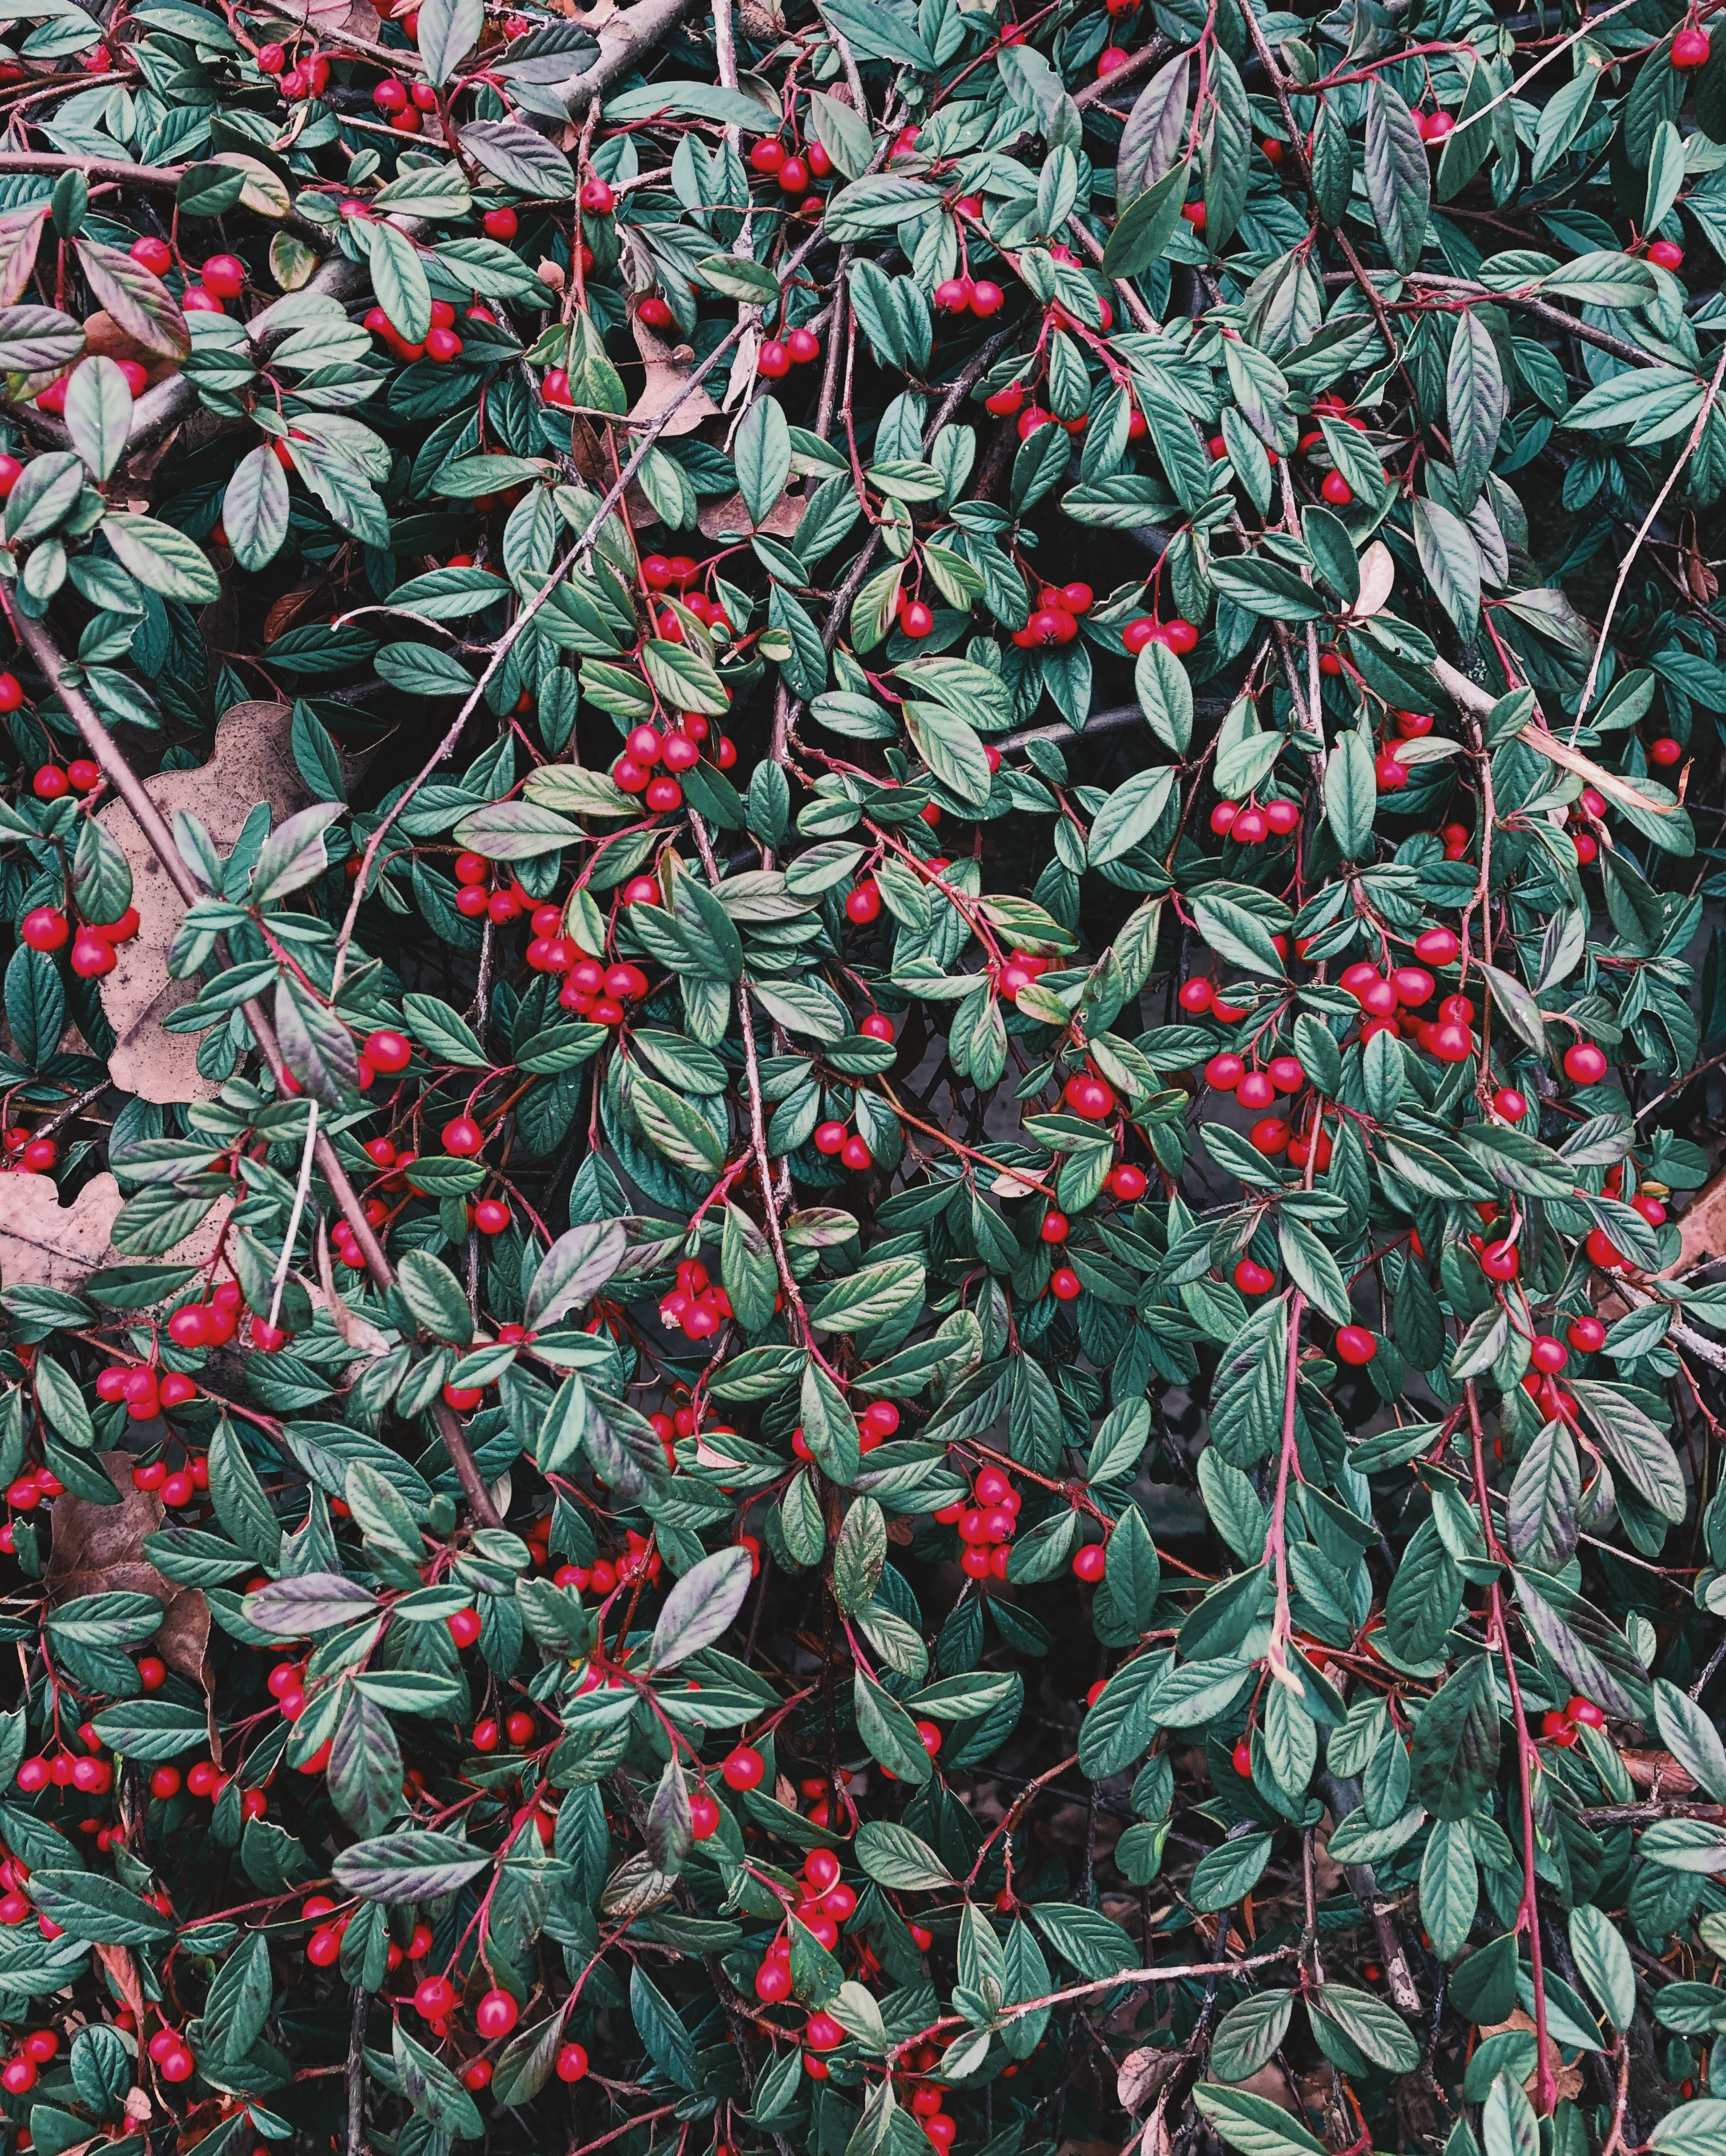 photograph of red fruits and leaves